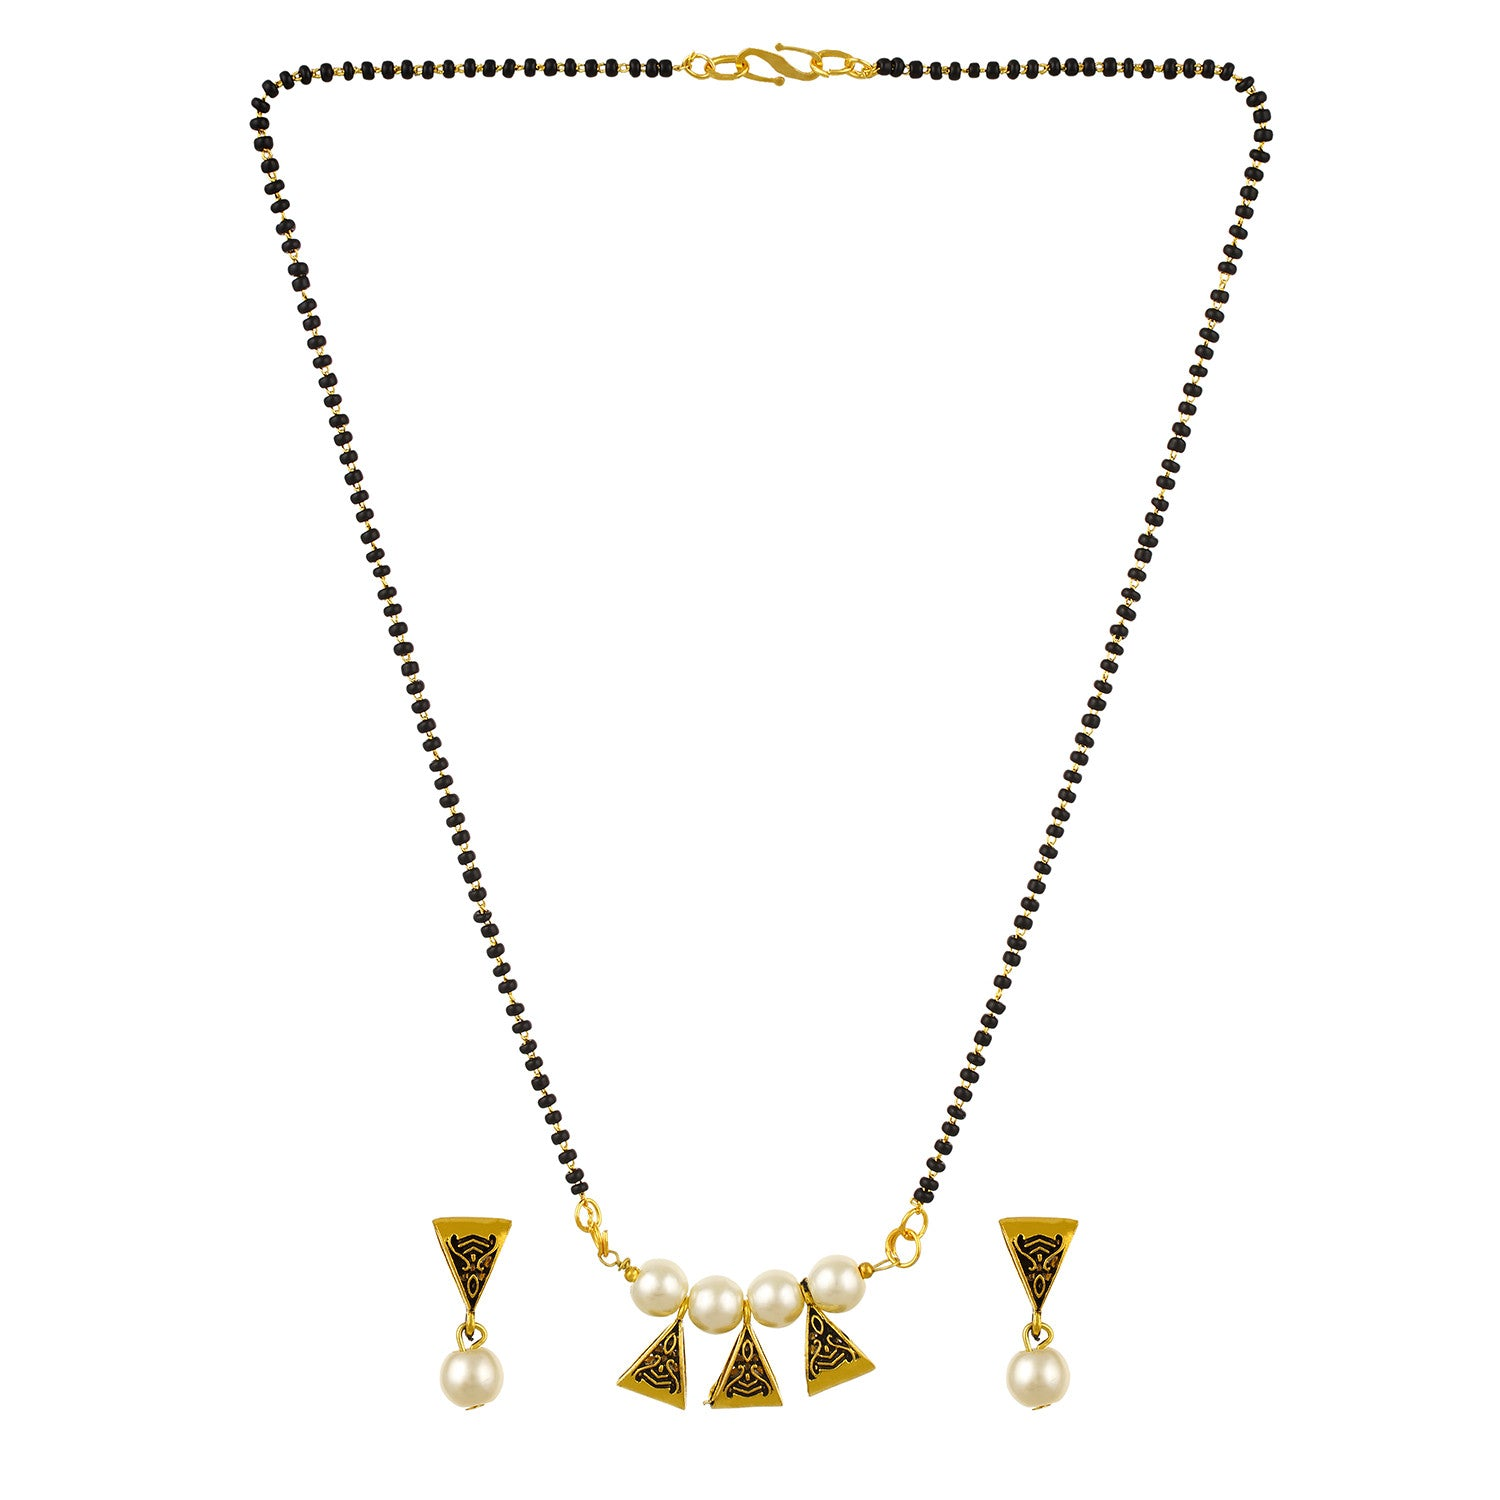 Gold Plated Alloy Pearl Mangalsutra Earrings Jewelry Set Black Beaded for Women